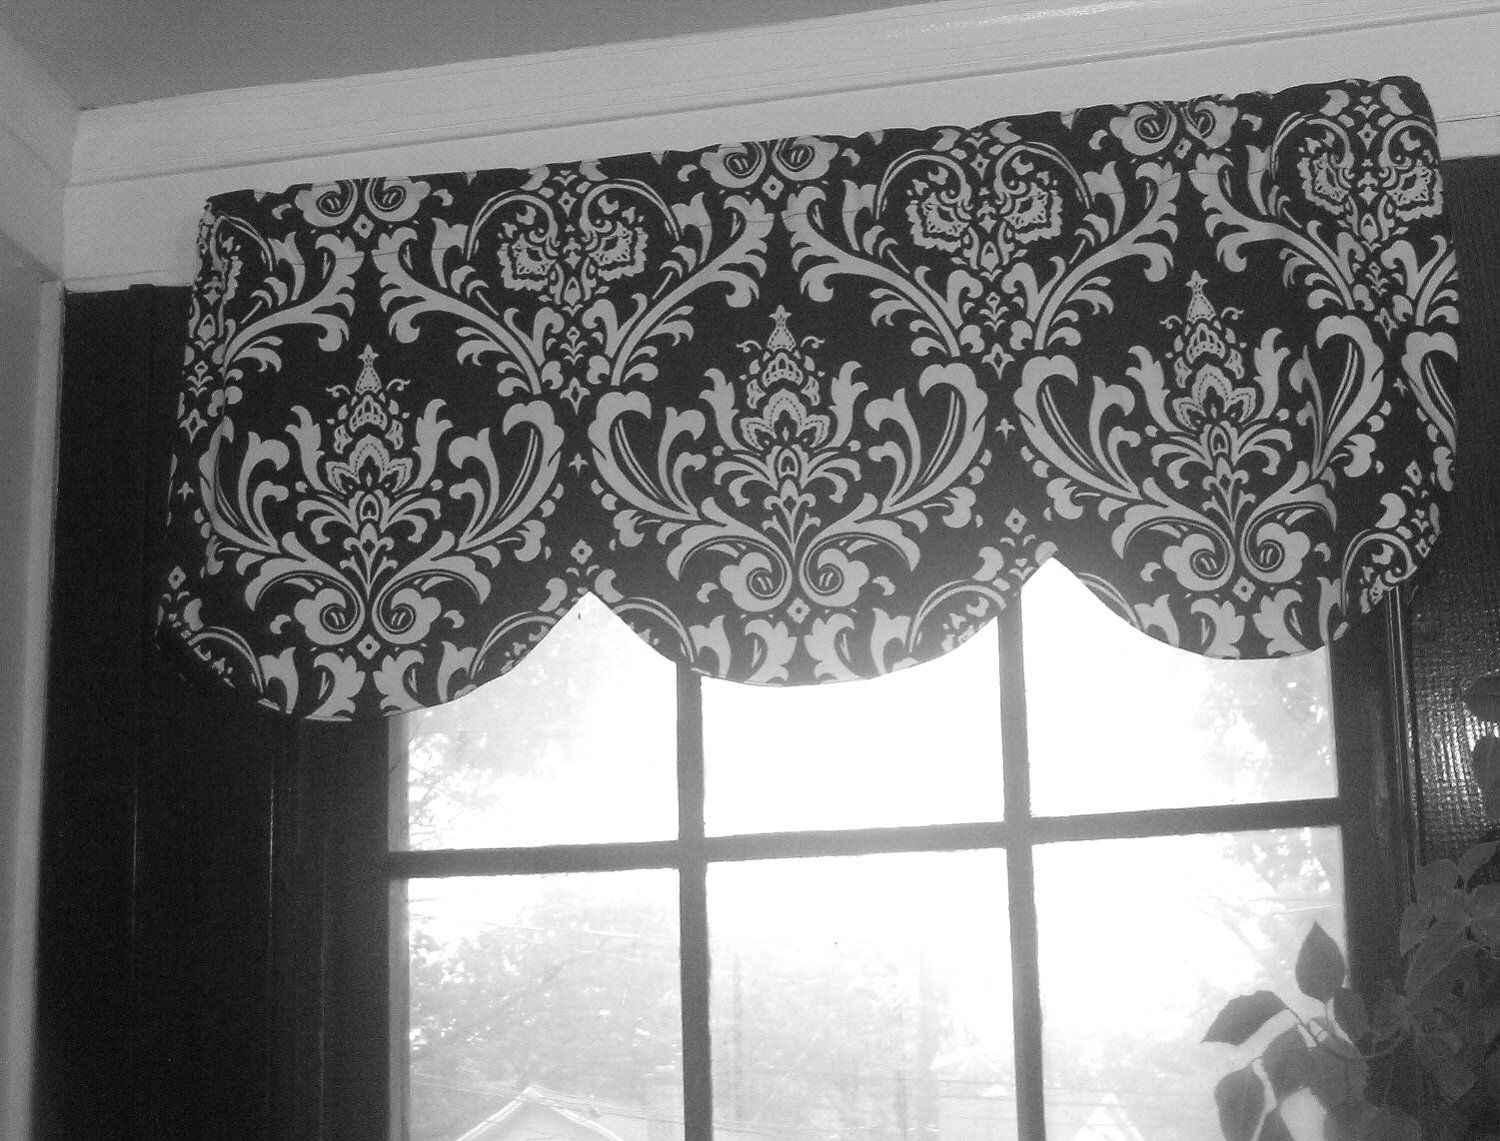 White Kitchen Valance window curtain valance damask black and white 42 x 16 inches